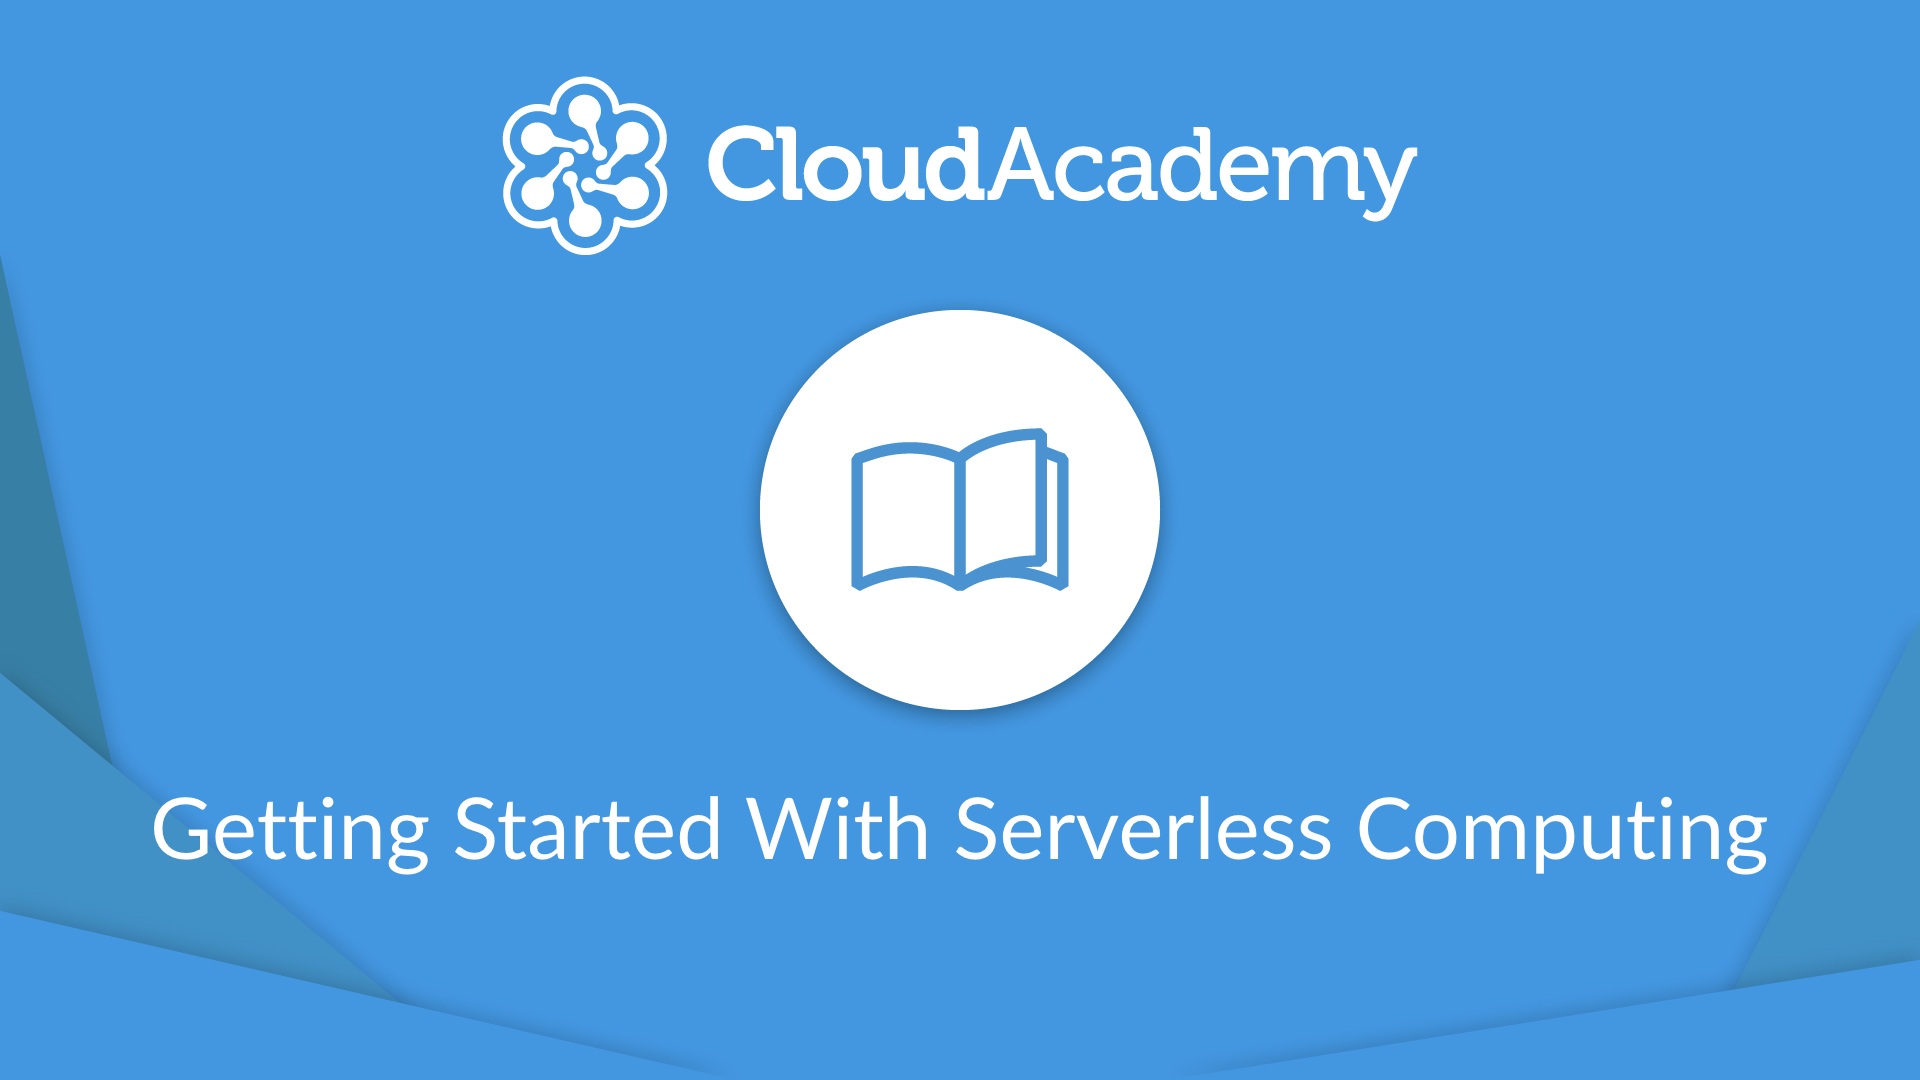 Getting Started With Serverless Computing - Conclusion